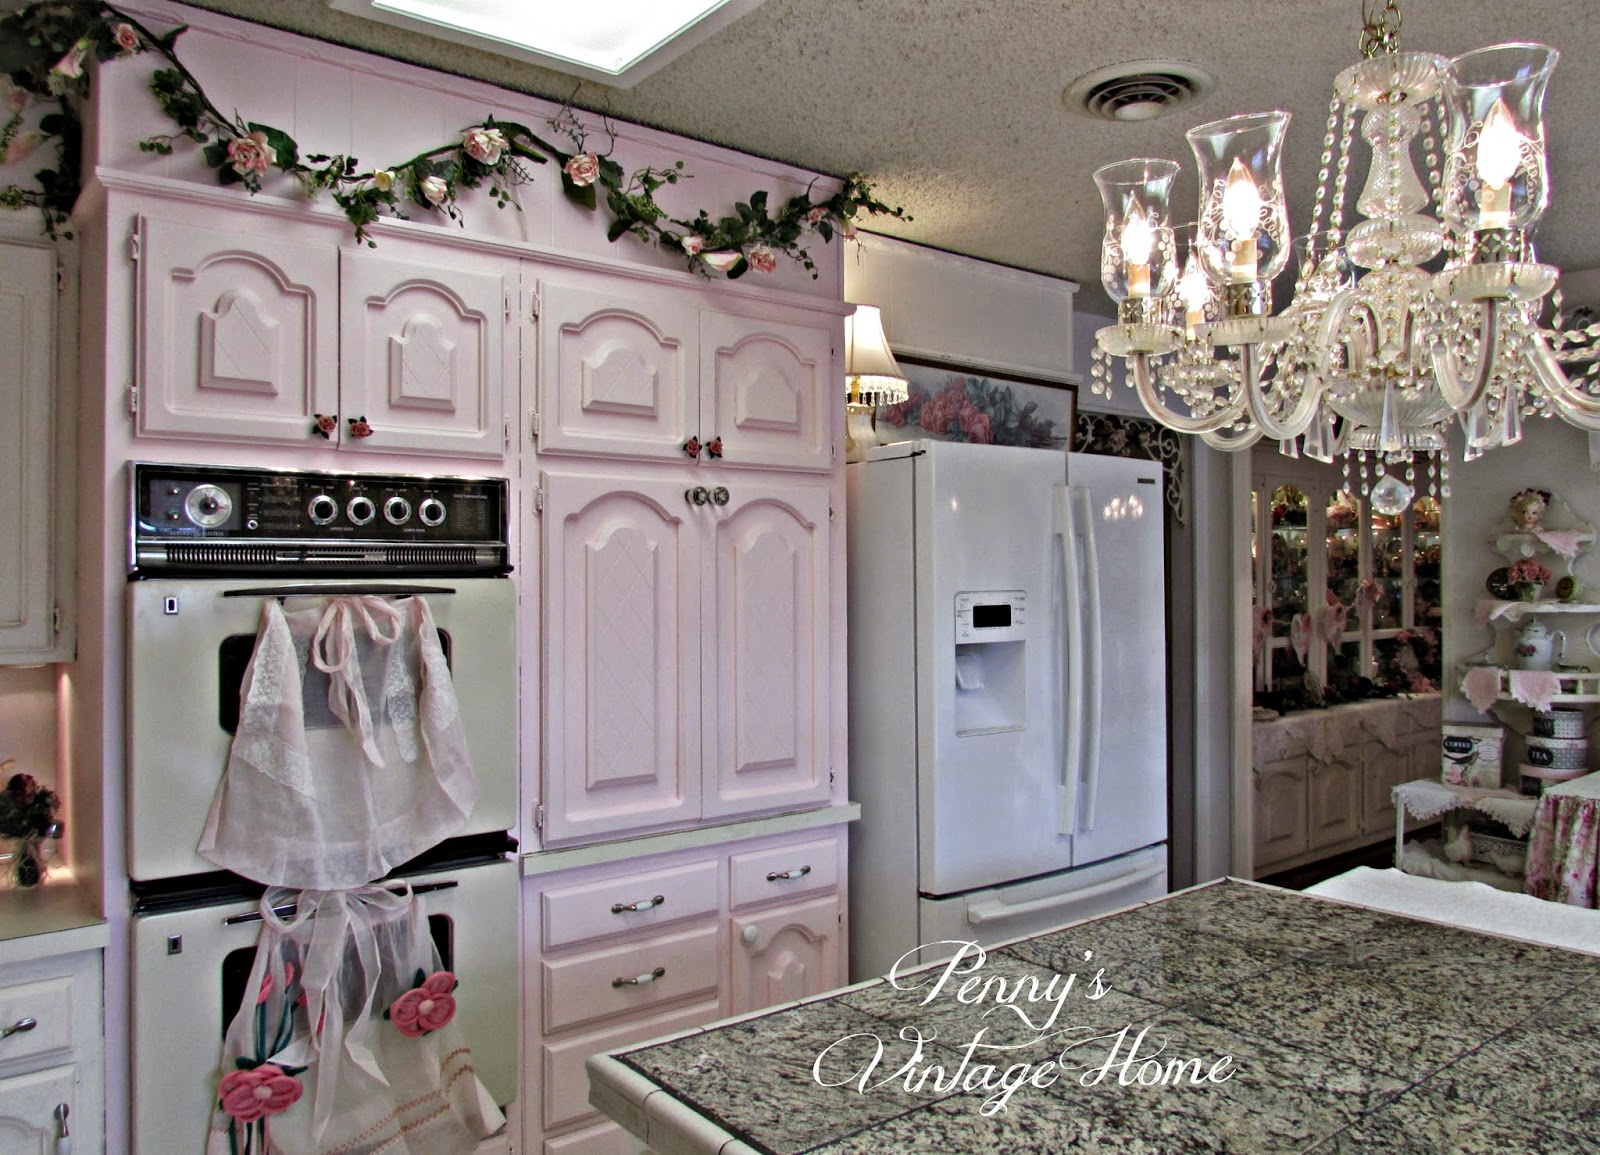 Penny S Vintage Home Pink Kitchen Cabinets